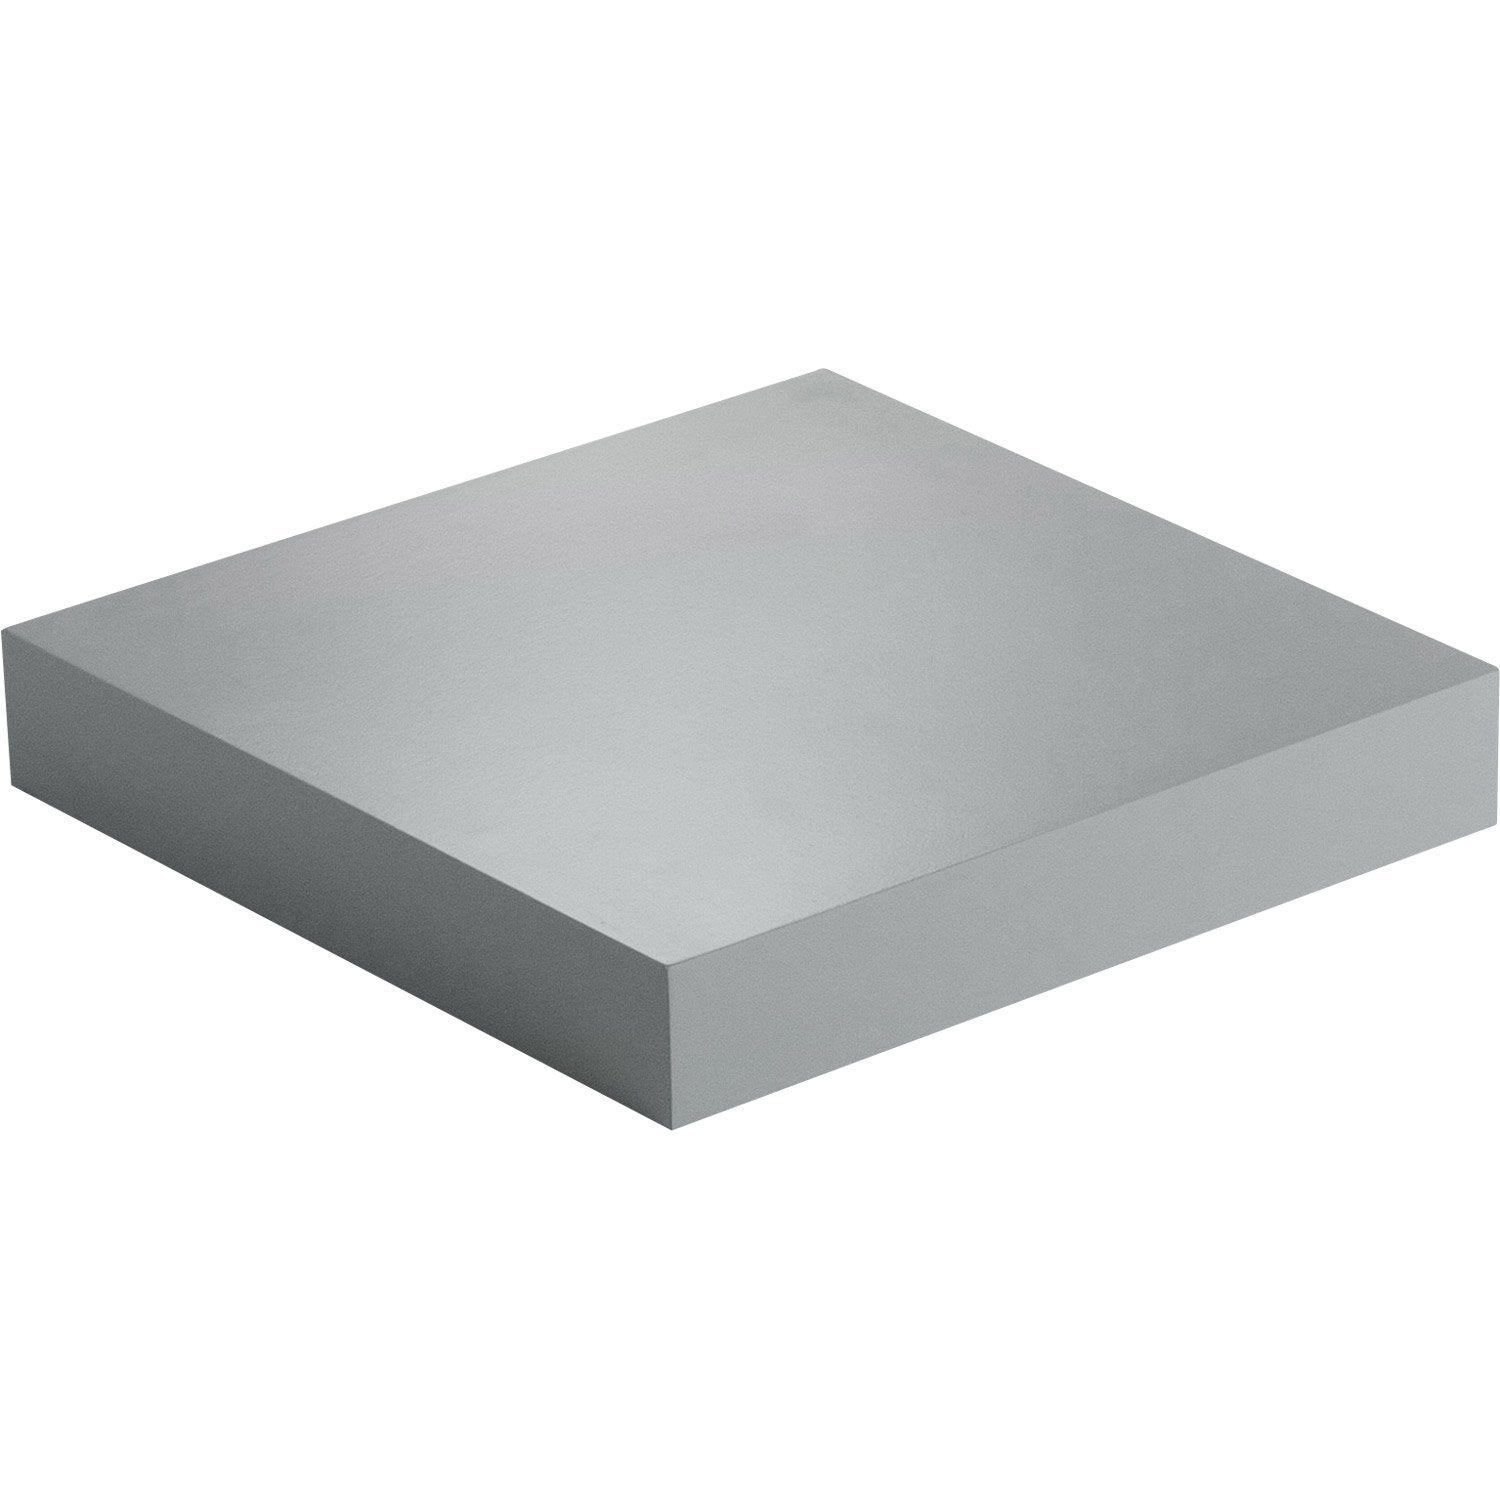 Etag re murale gris color spaceo l 23 5 x p 23 5 cm p - Leroy merlin etagere murale ...